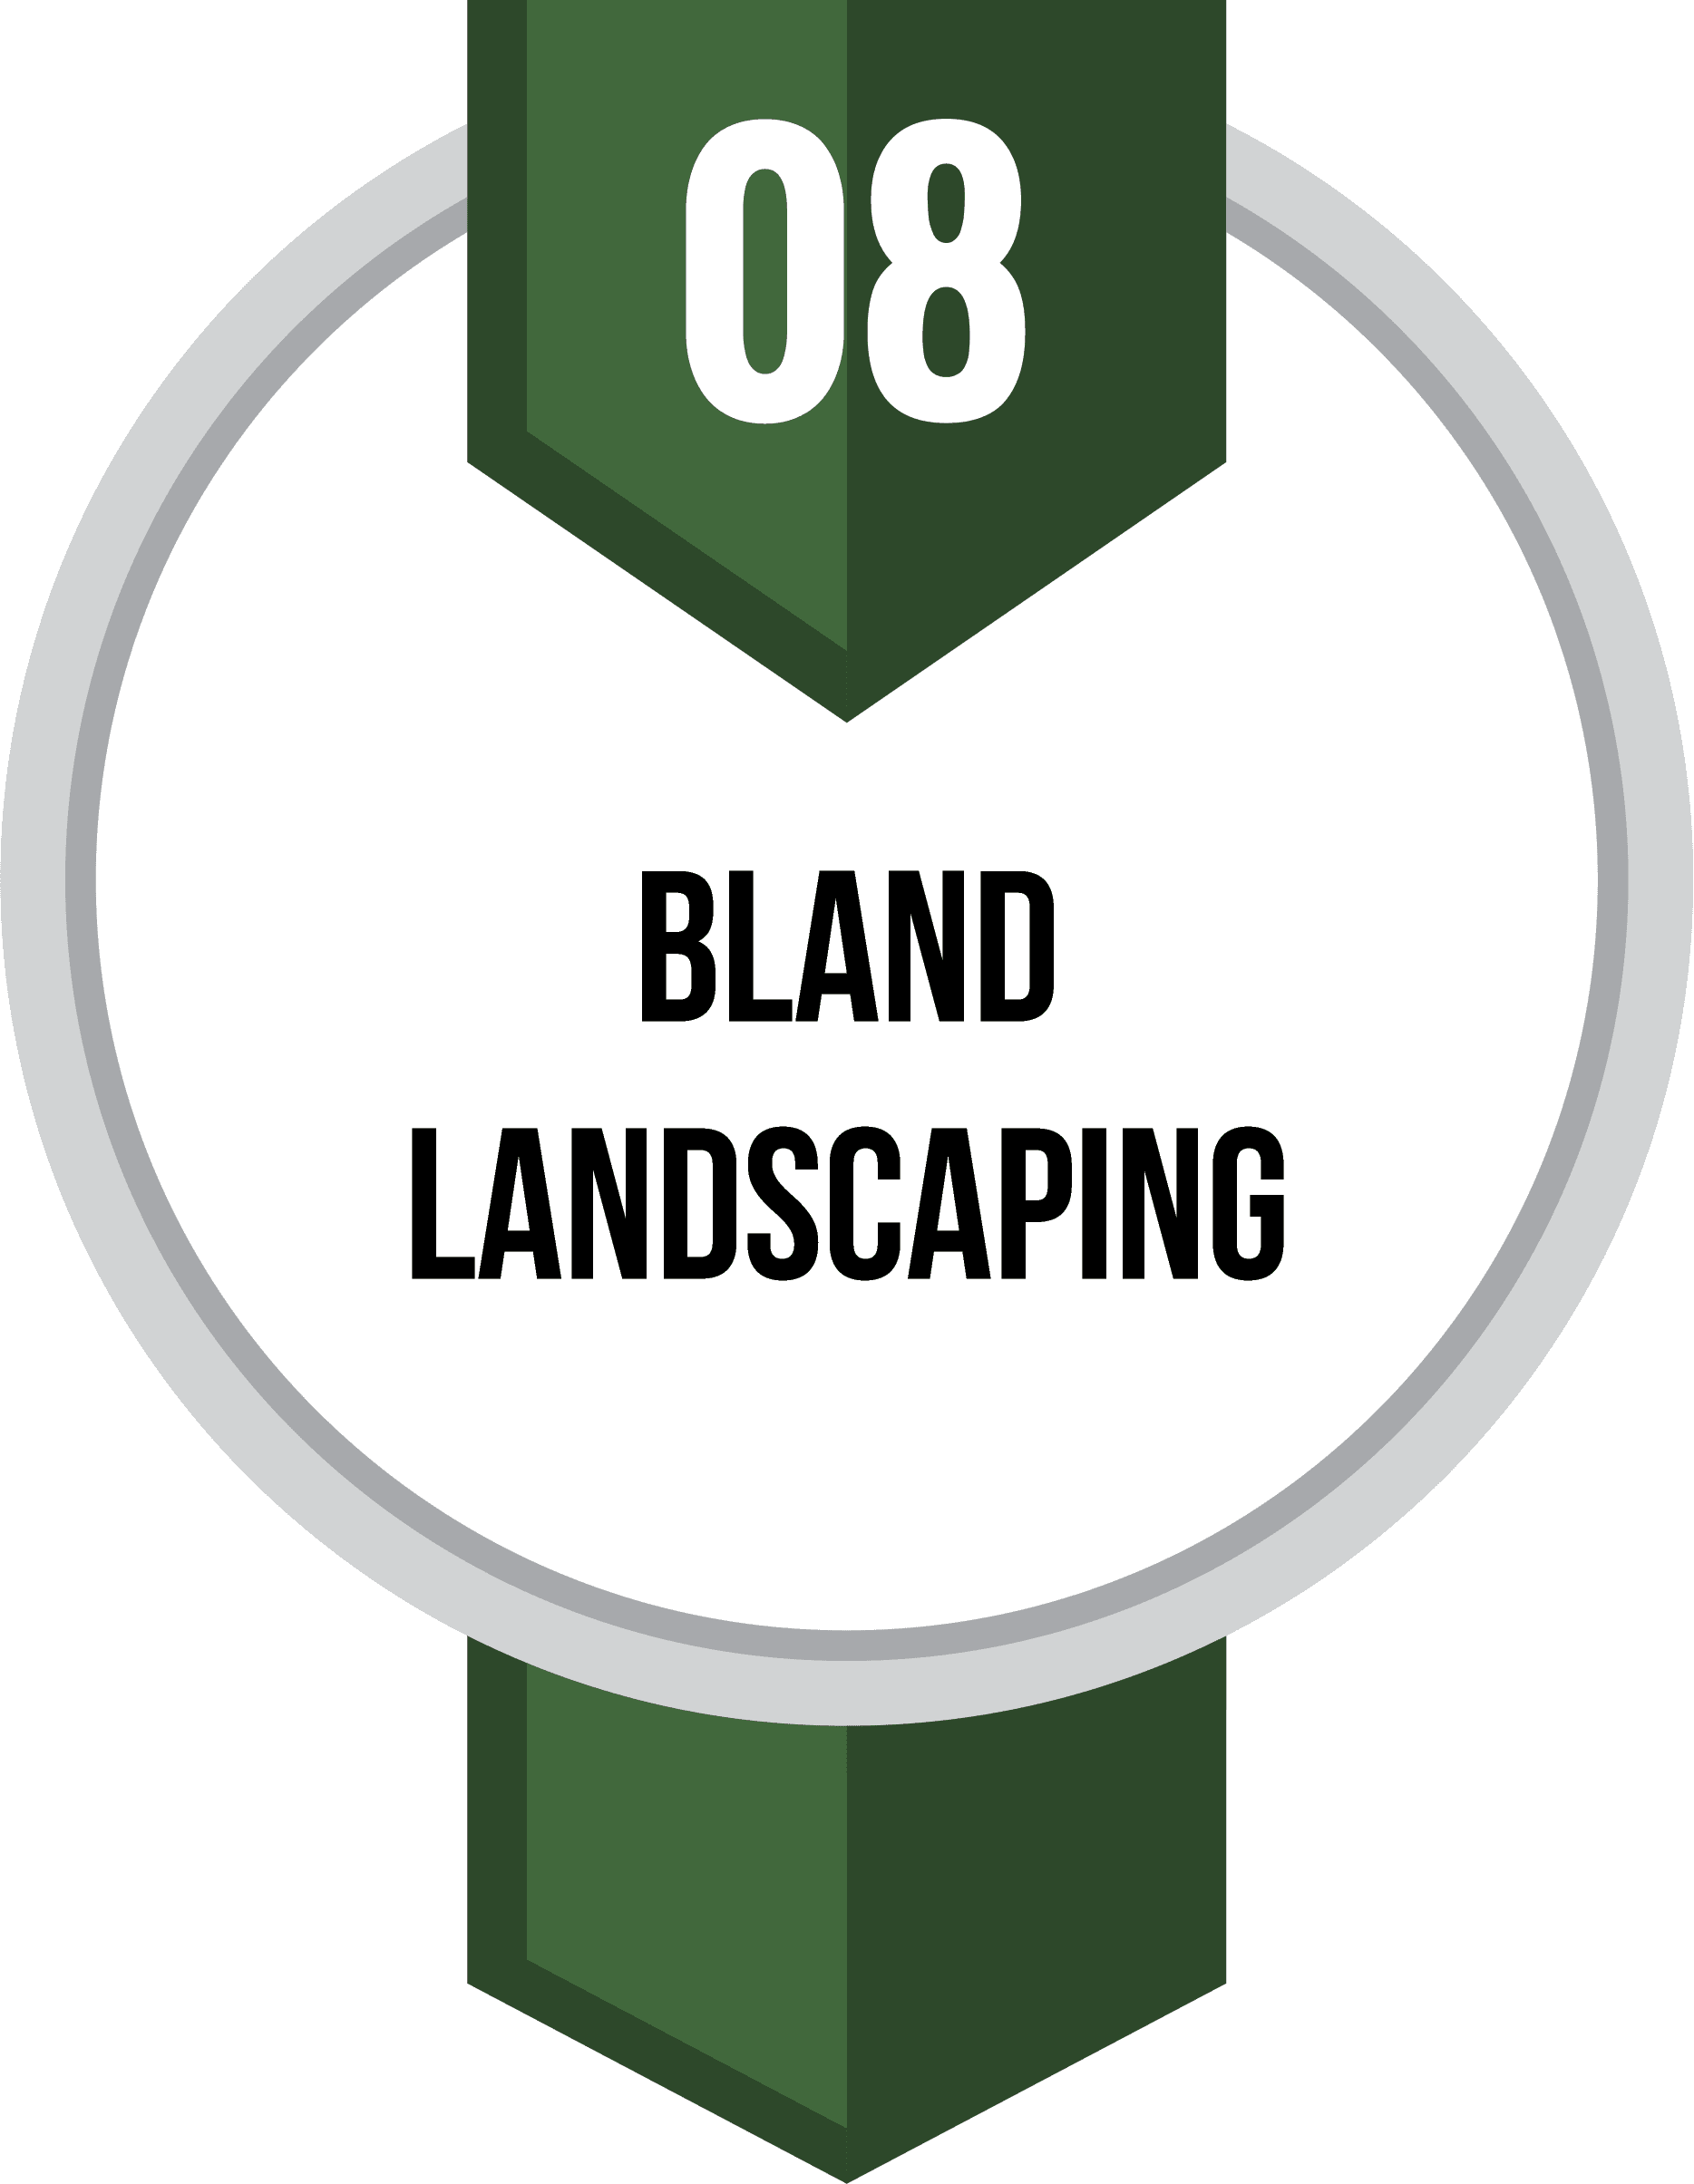 Bland Landscaping Opens in new window